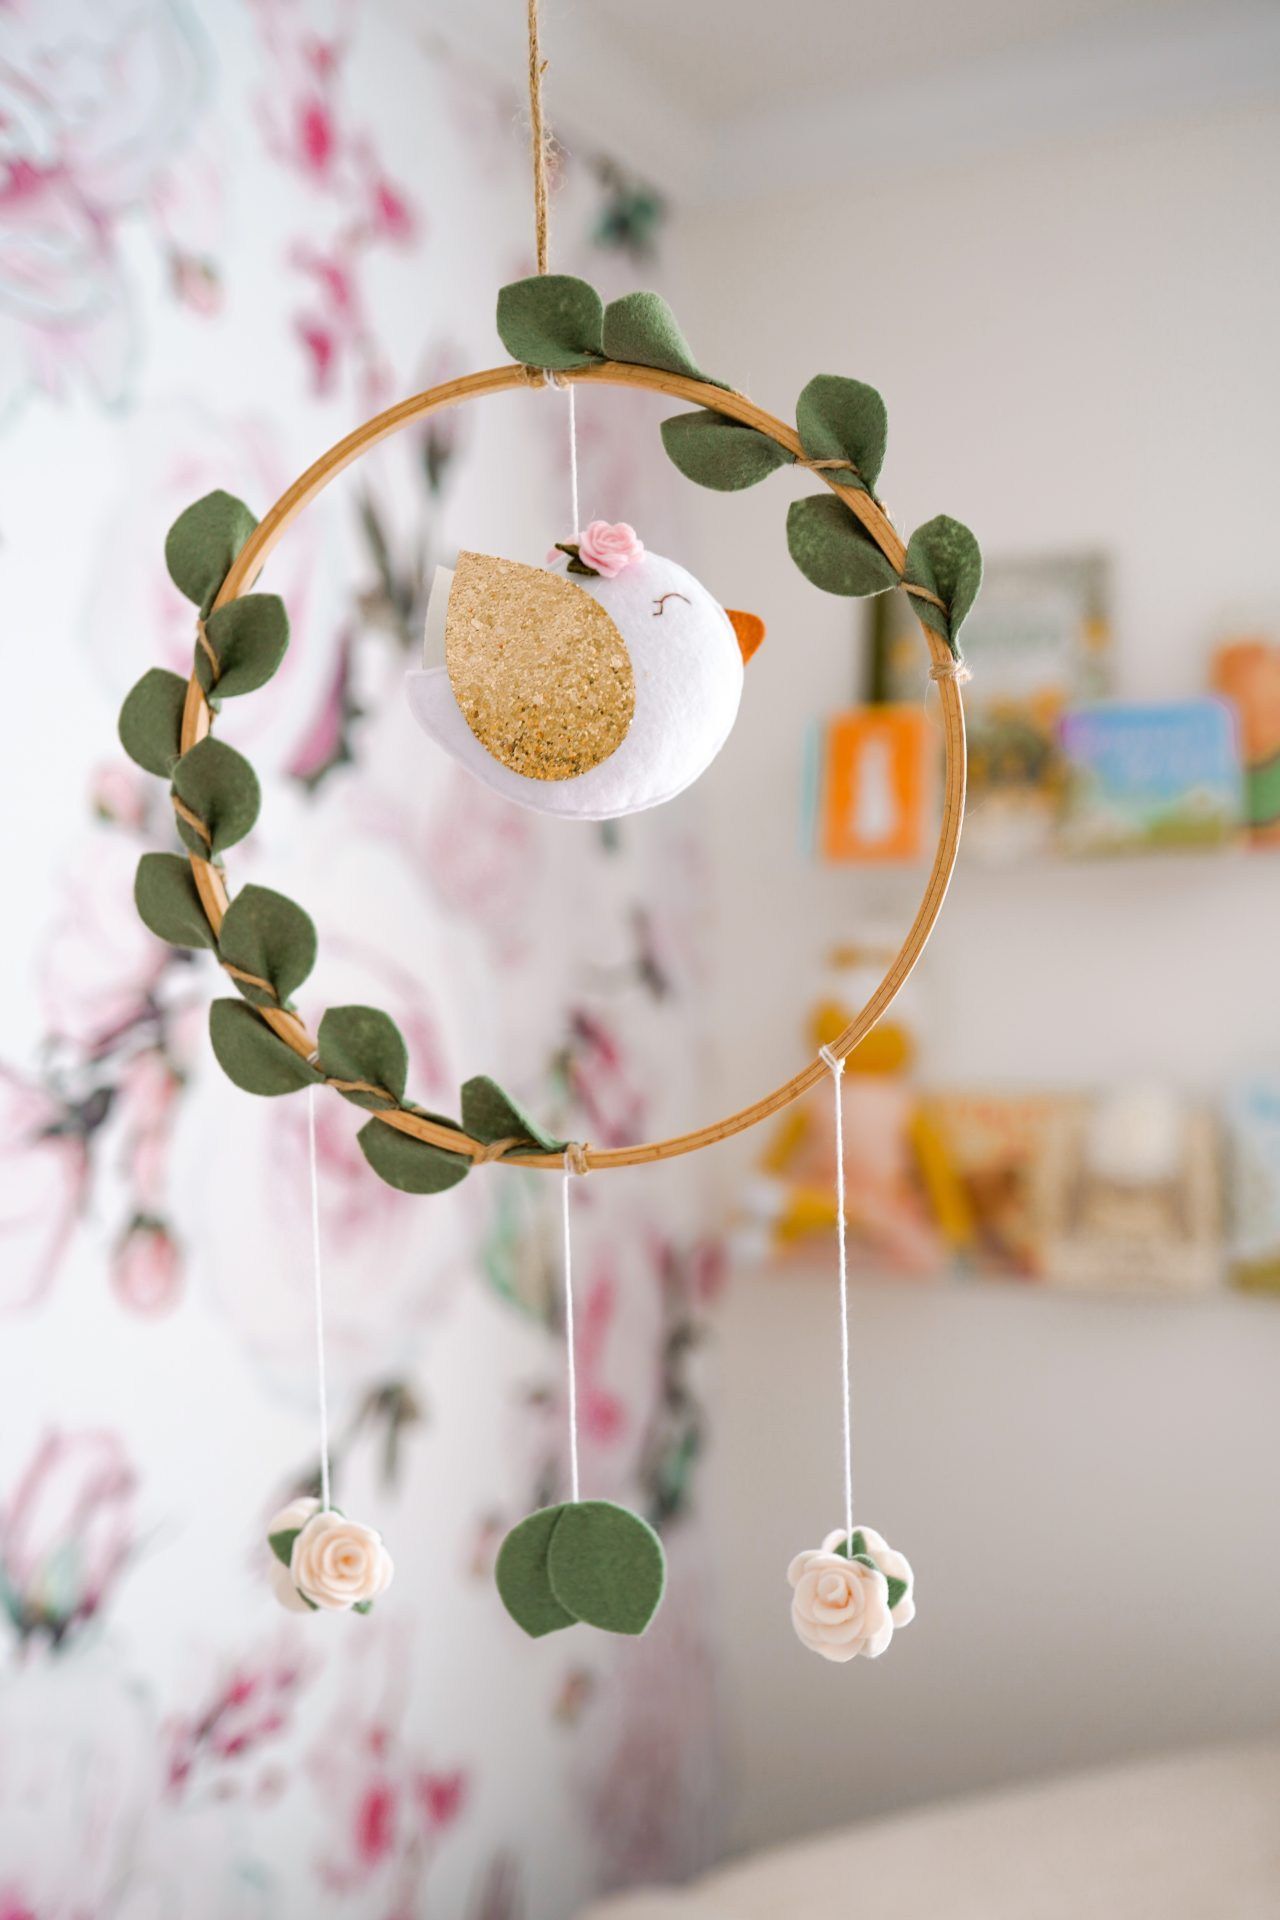 Bird Baby Mobile with Leaves and Flowers